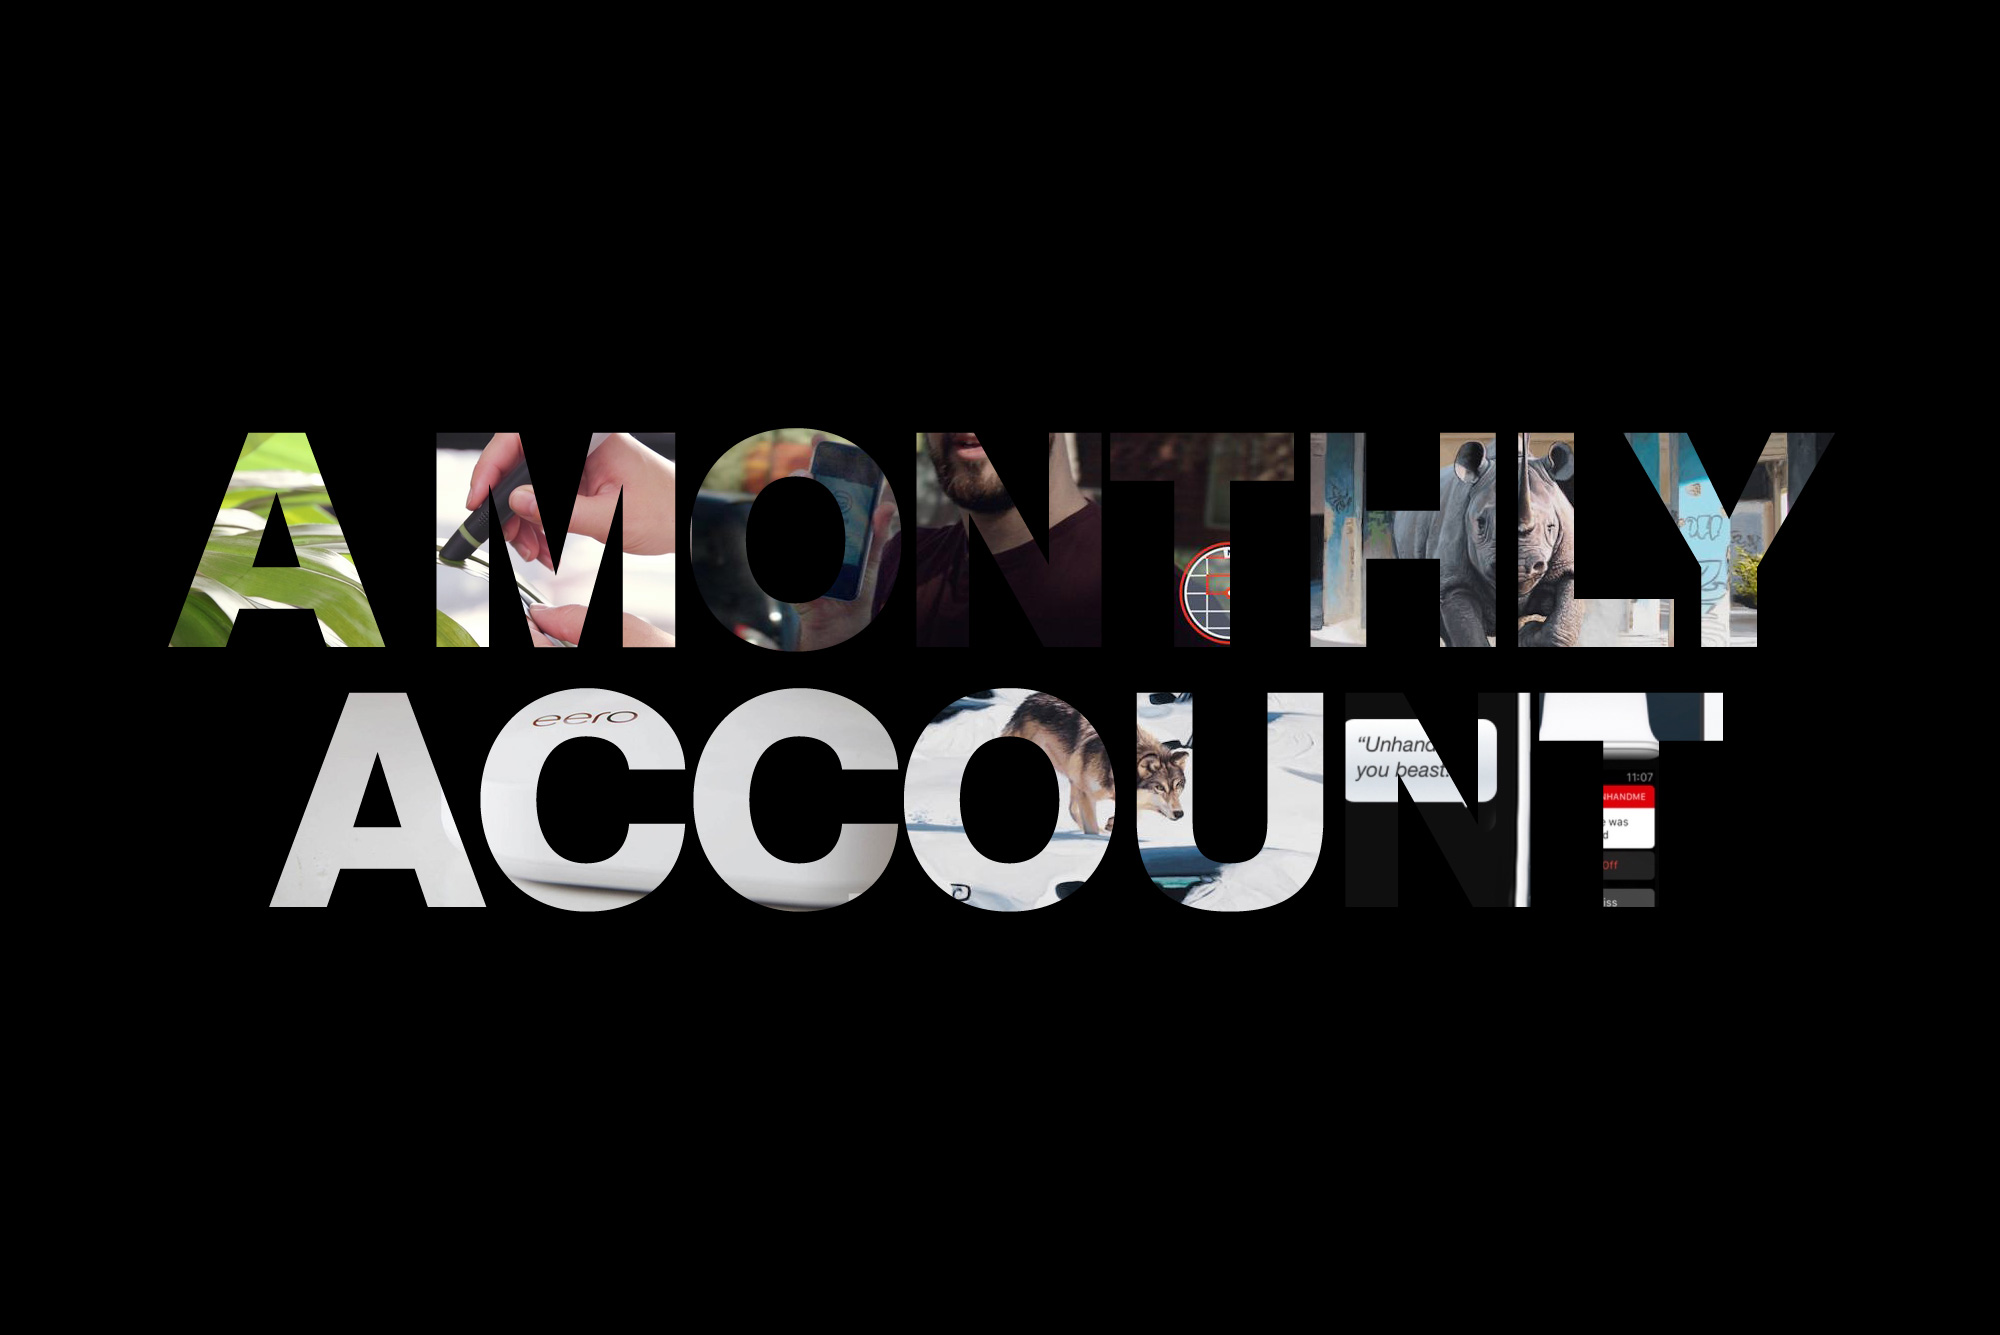 A Monthly account image with various images in the lettering